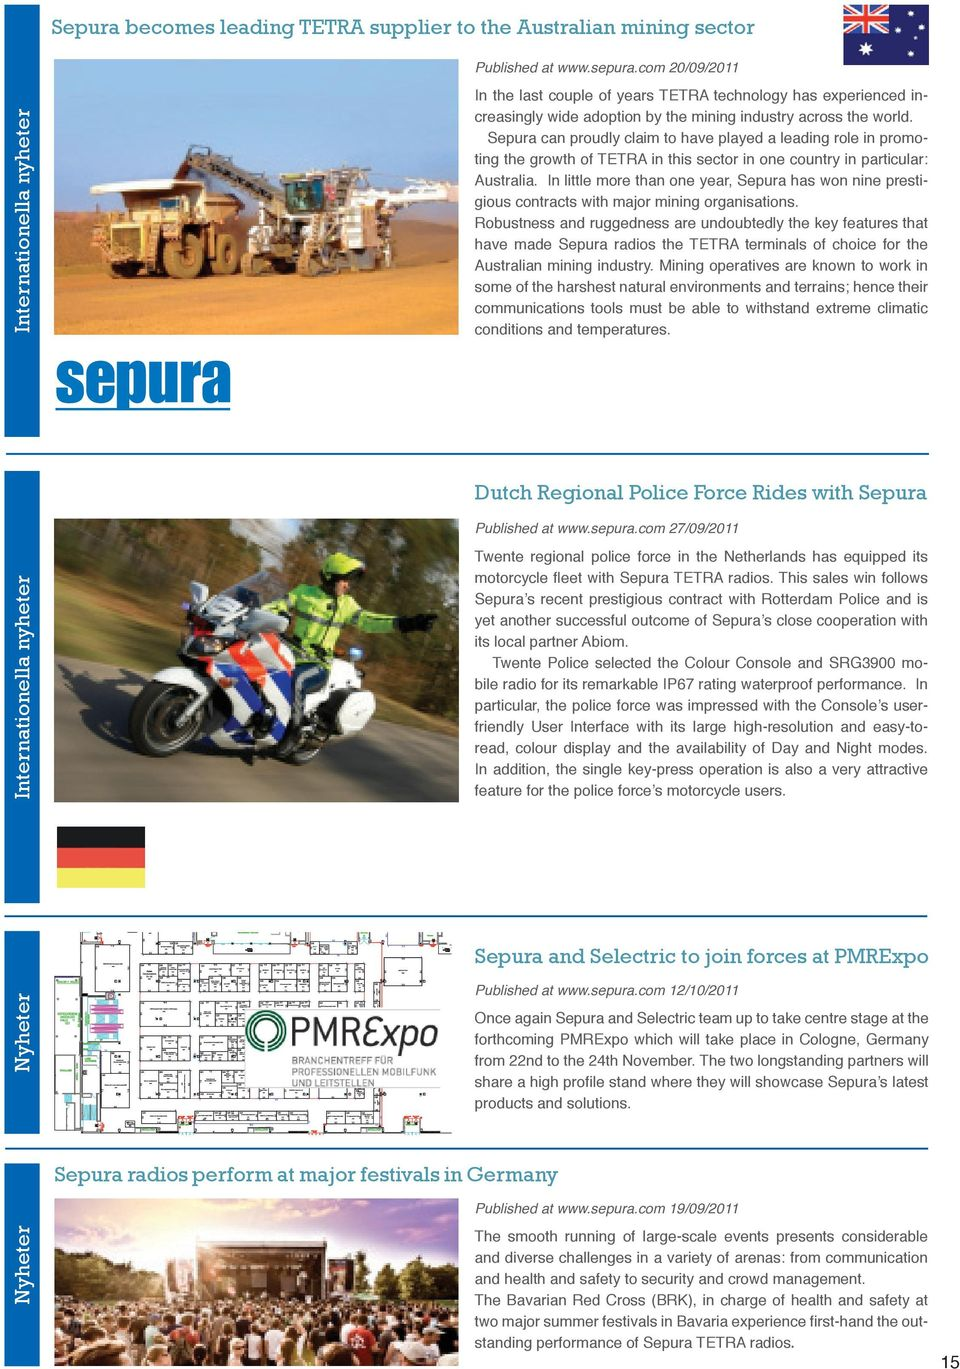 Sepura can proudly claim to have played a leading role in promoting the growth of TETRA in this sector in one country in particular: Australia.